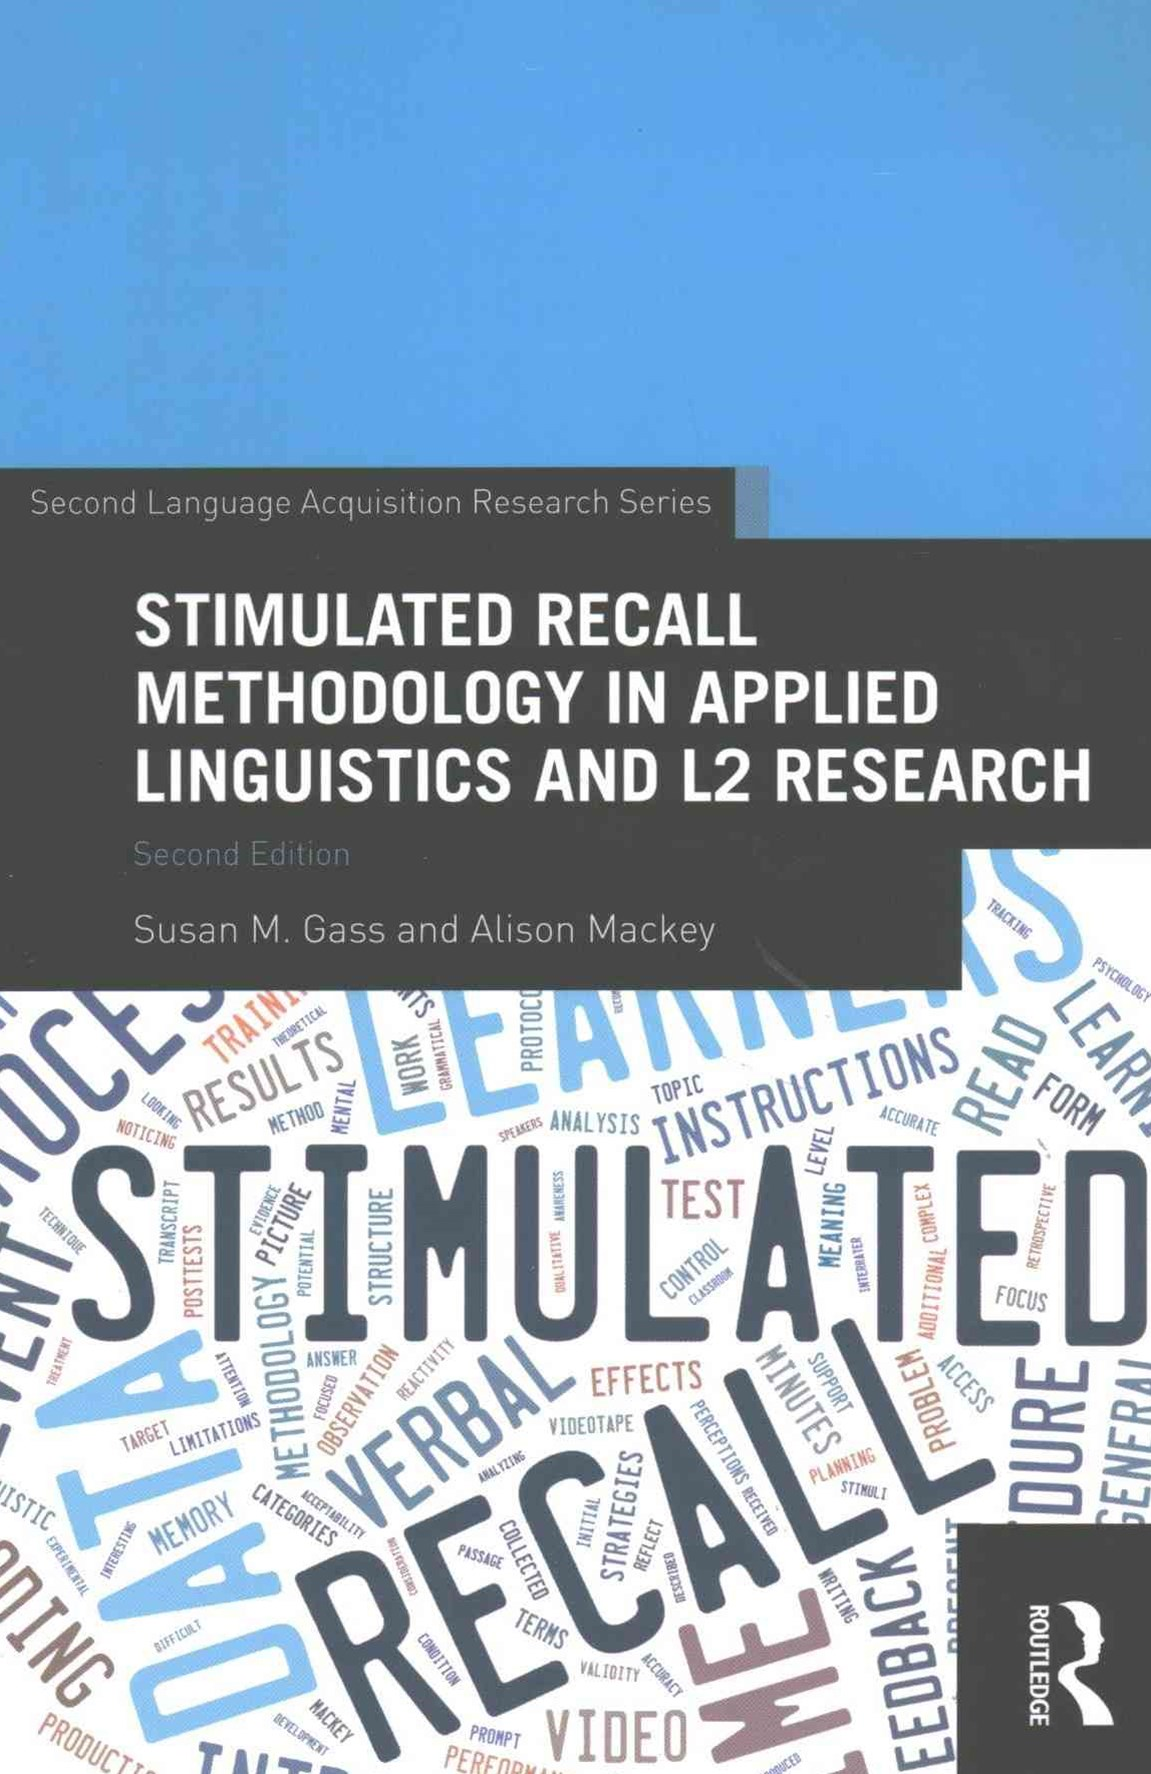 Stimulated Recall Methodology in Applied Linguistics and L2 Research